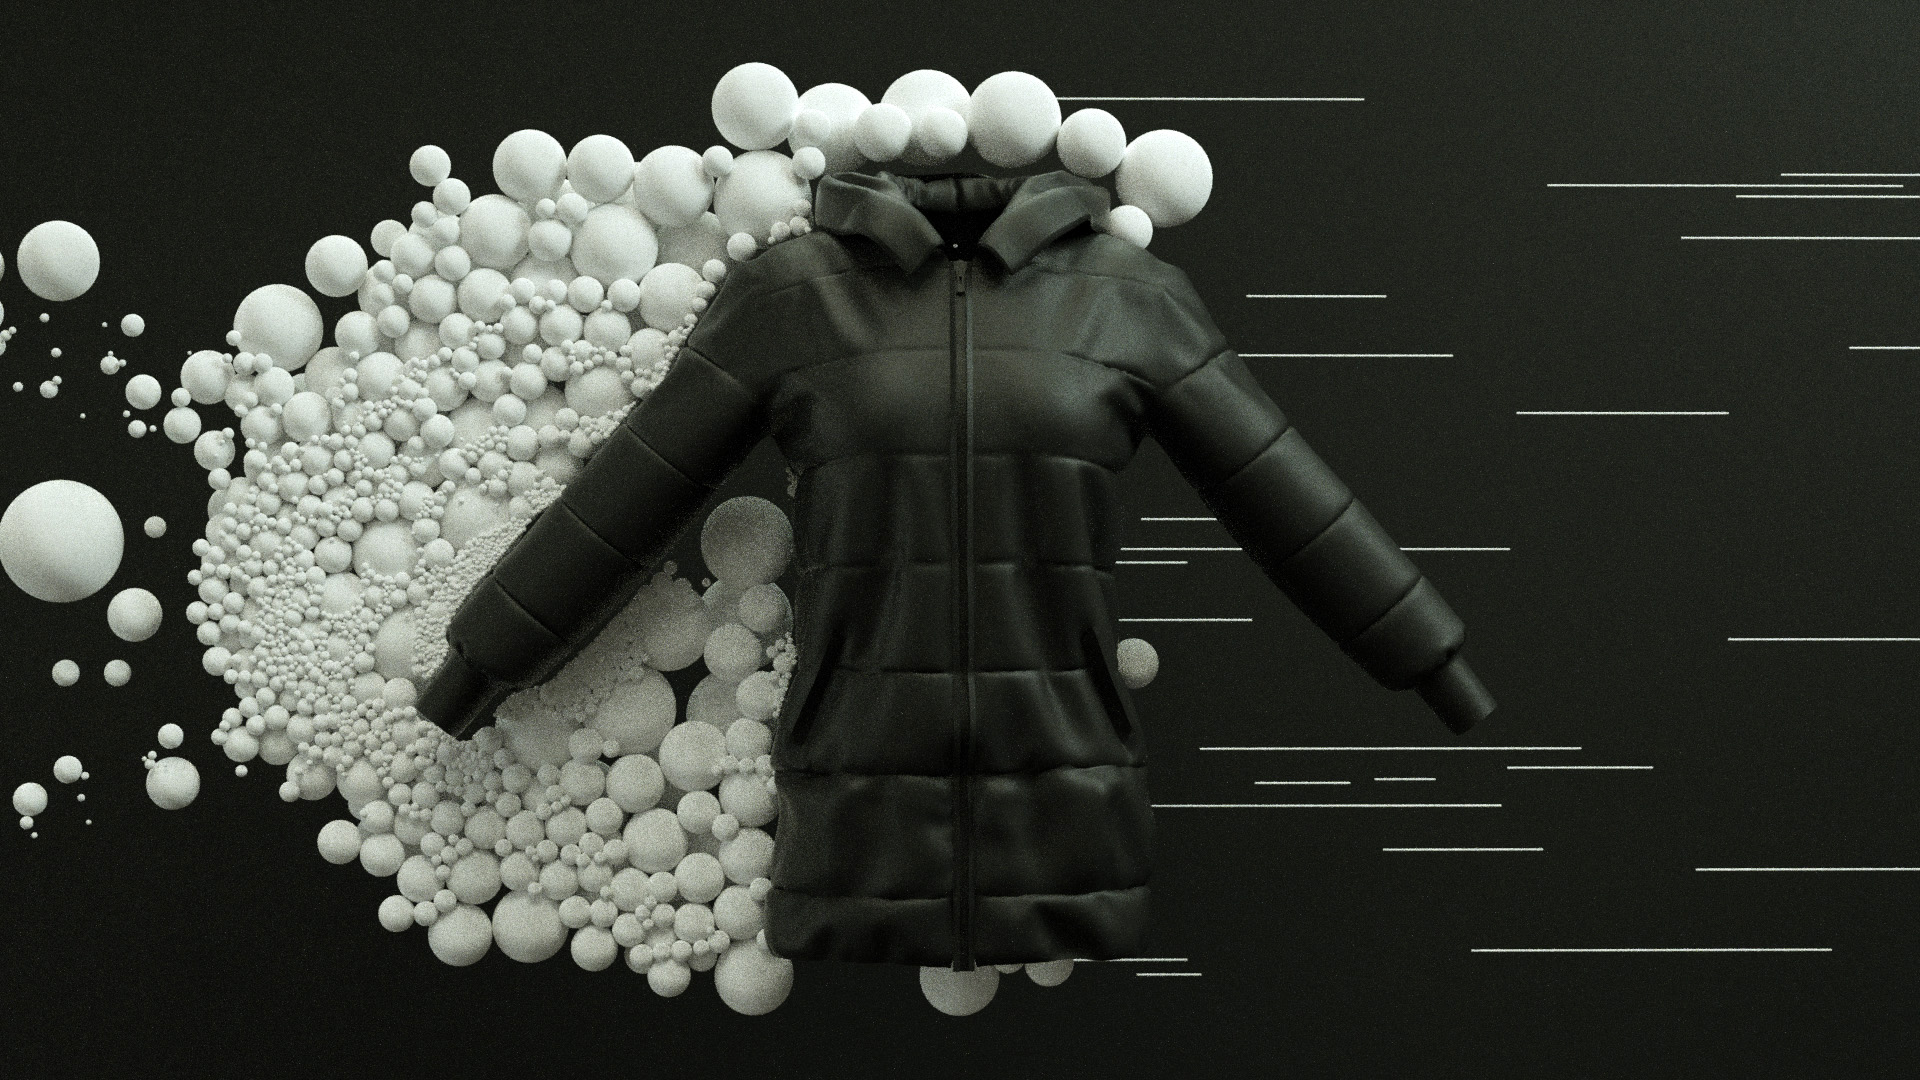 Nike Techfleece | STASH MAGAZINE